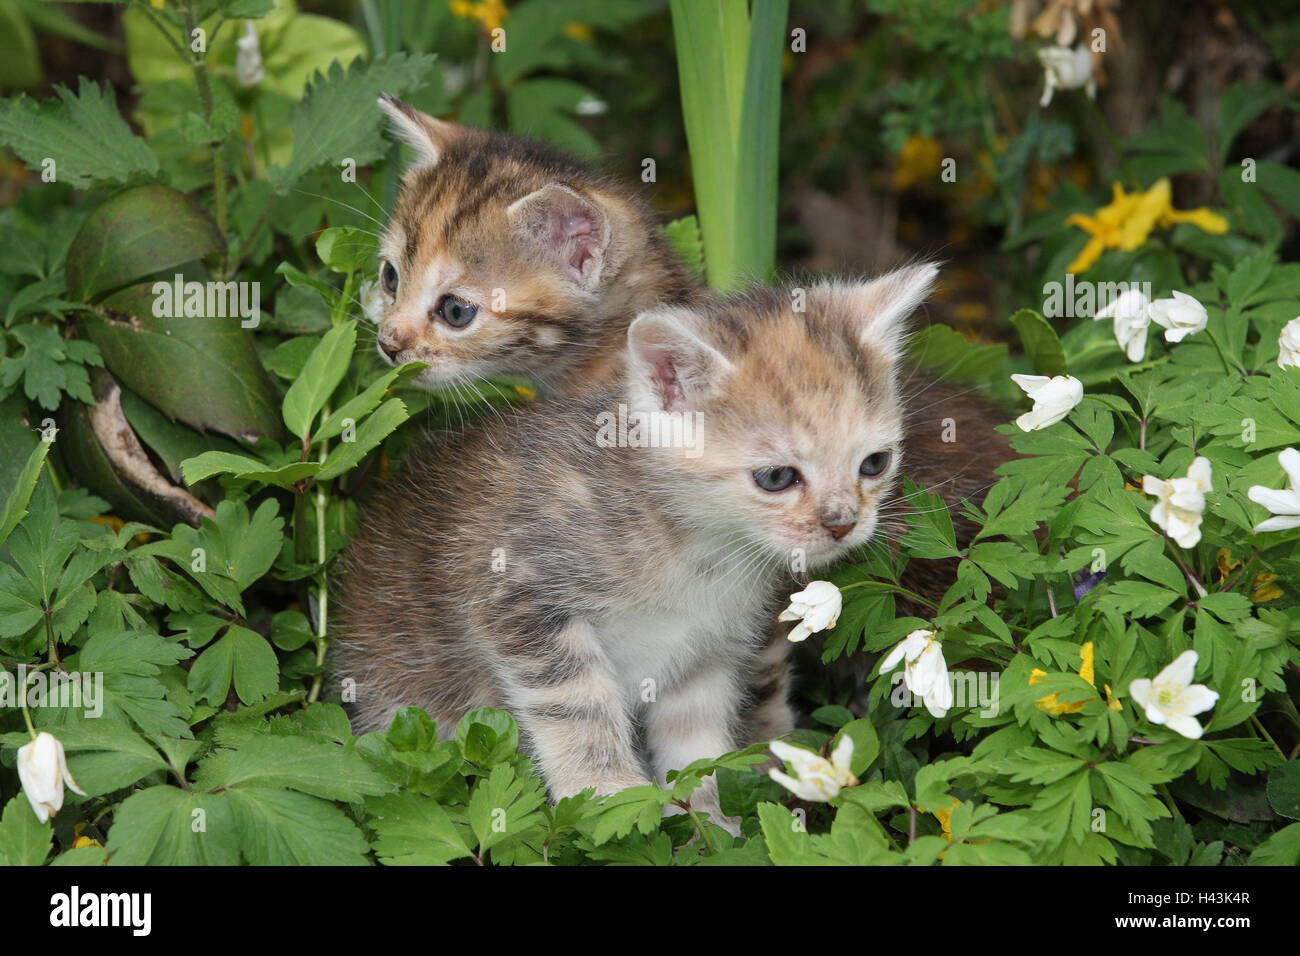 Cats, Young, Sit, Meadow, Garden, Animals, Mammals, Pets, Small Cats,  Felidae, Domesticates, House Cat, Young Animal, Kitten, Two, Siblings,  Play, Together, ...